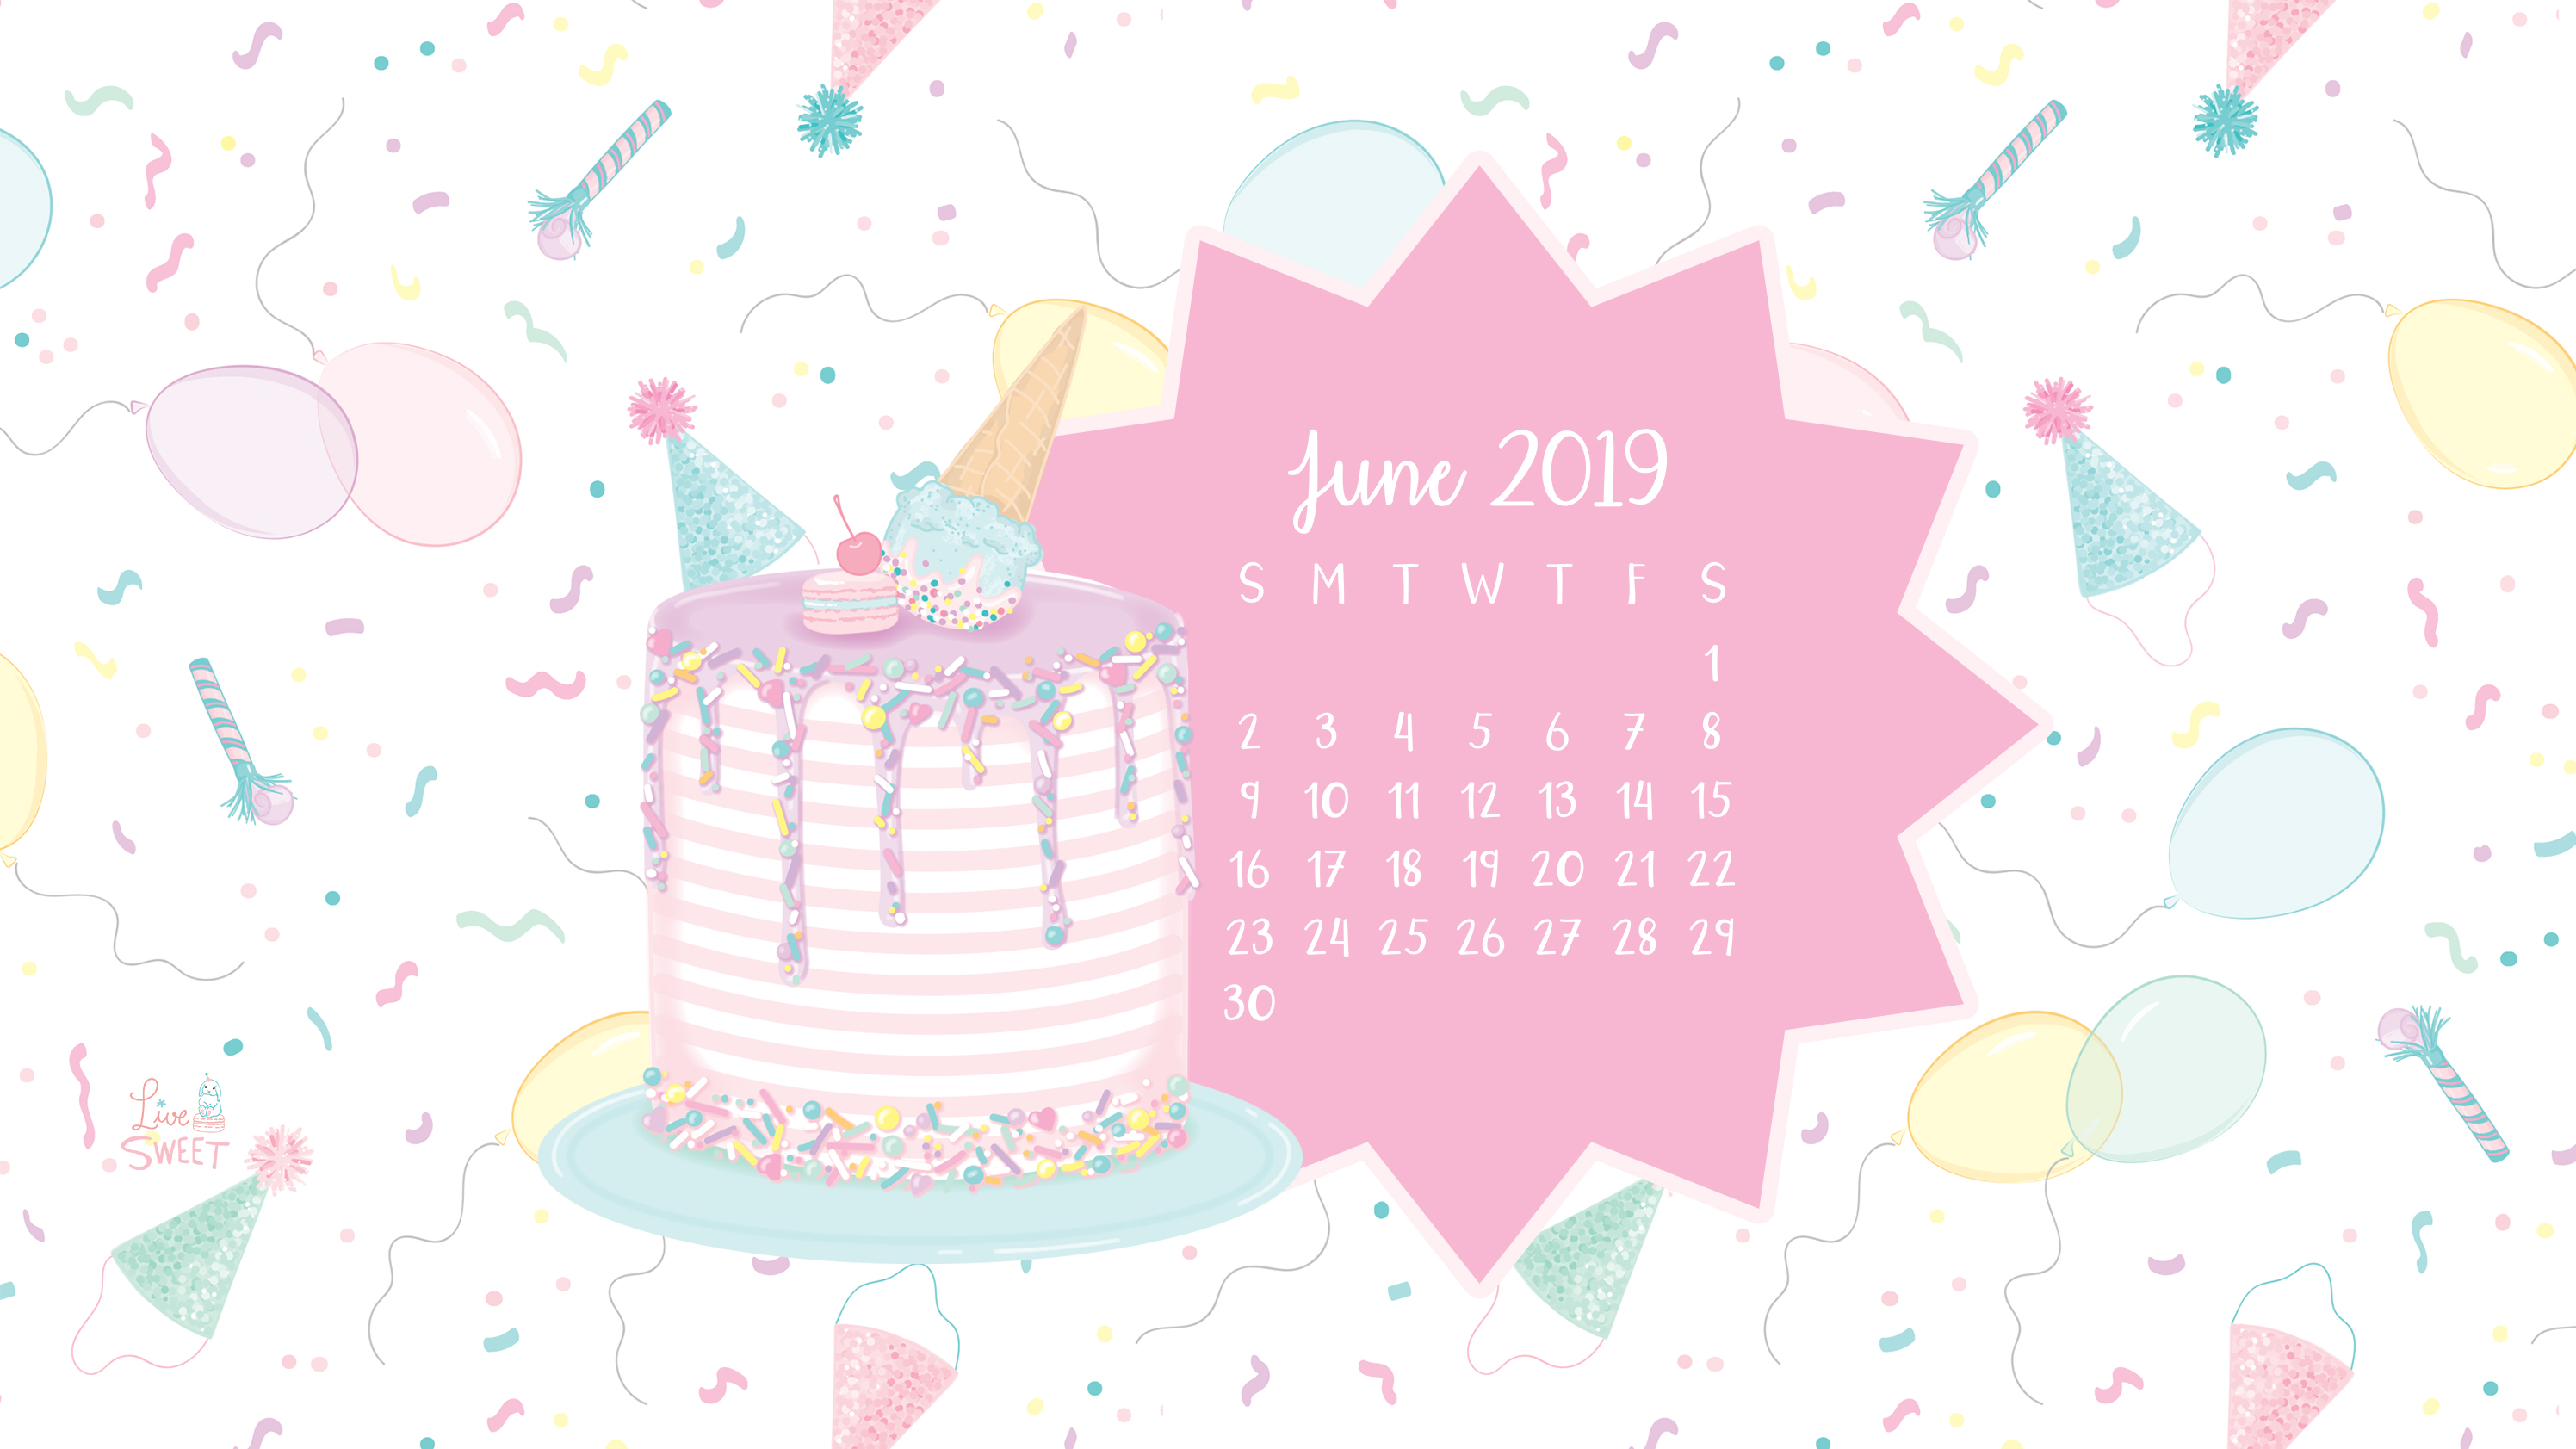 June 2019 Free Wallpapers Live Sweet